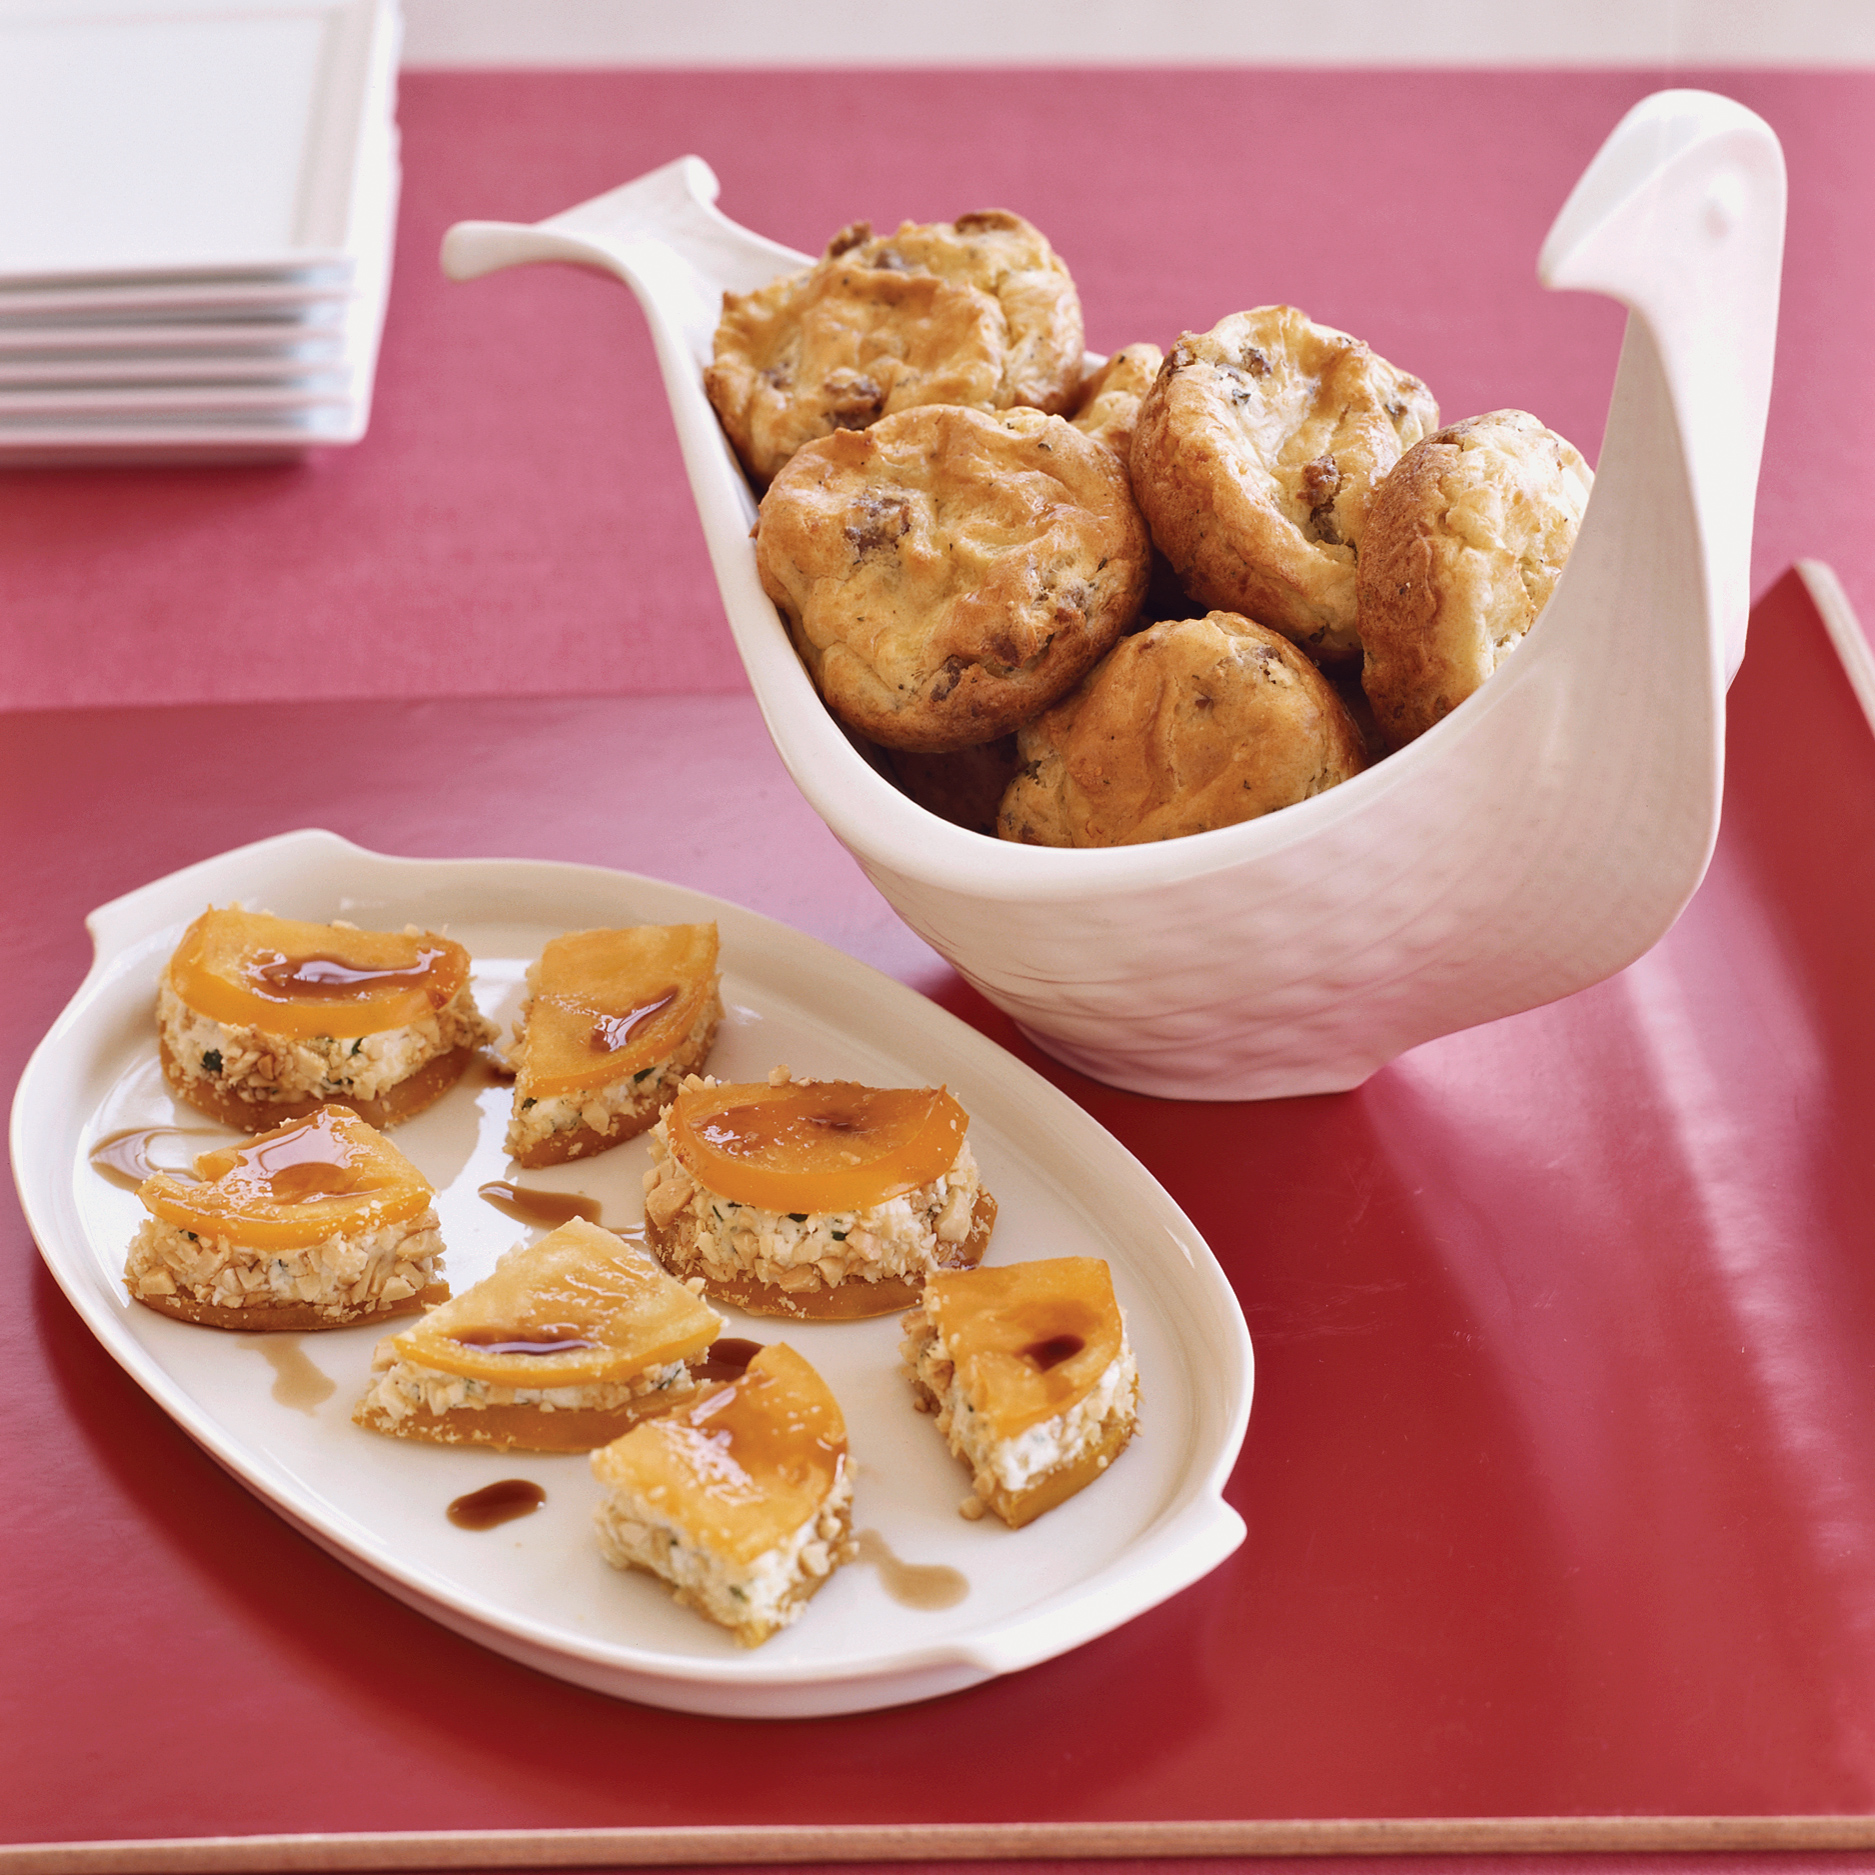 Persimmon-Goat Cheese Wedges